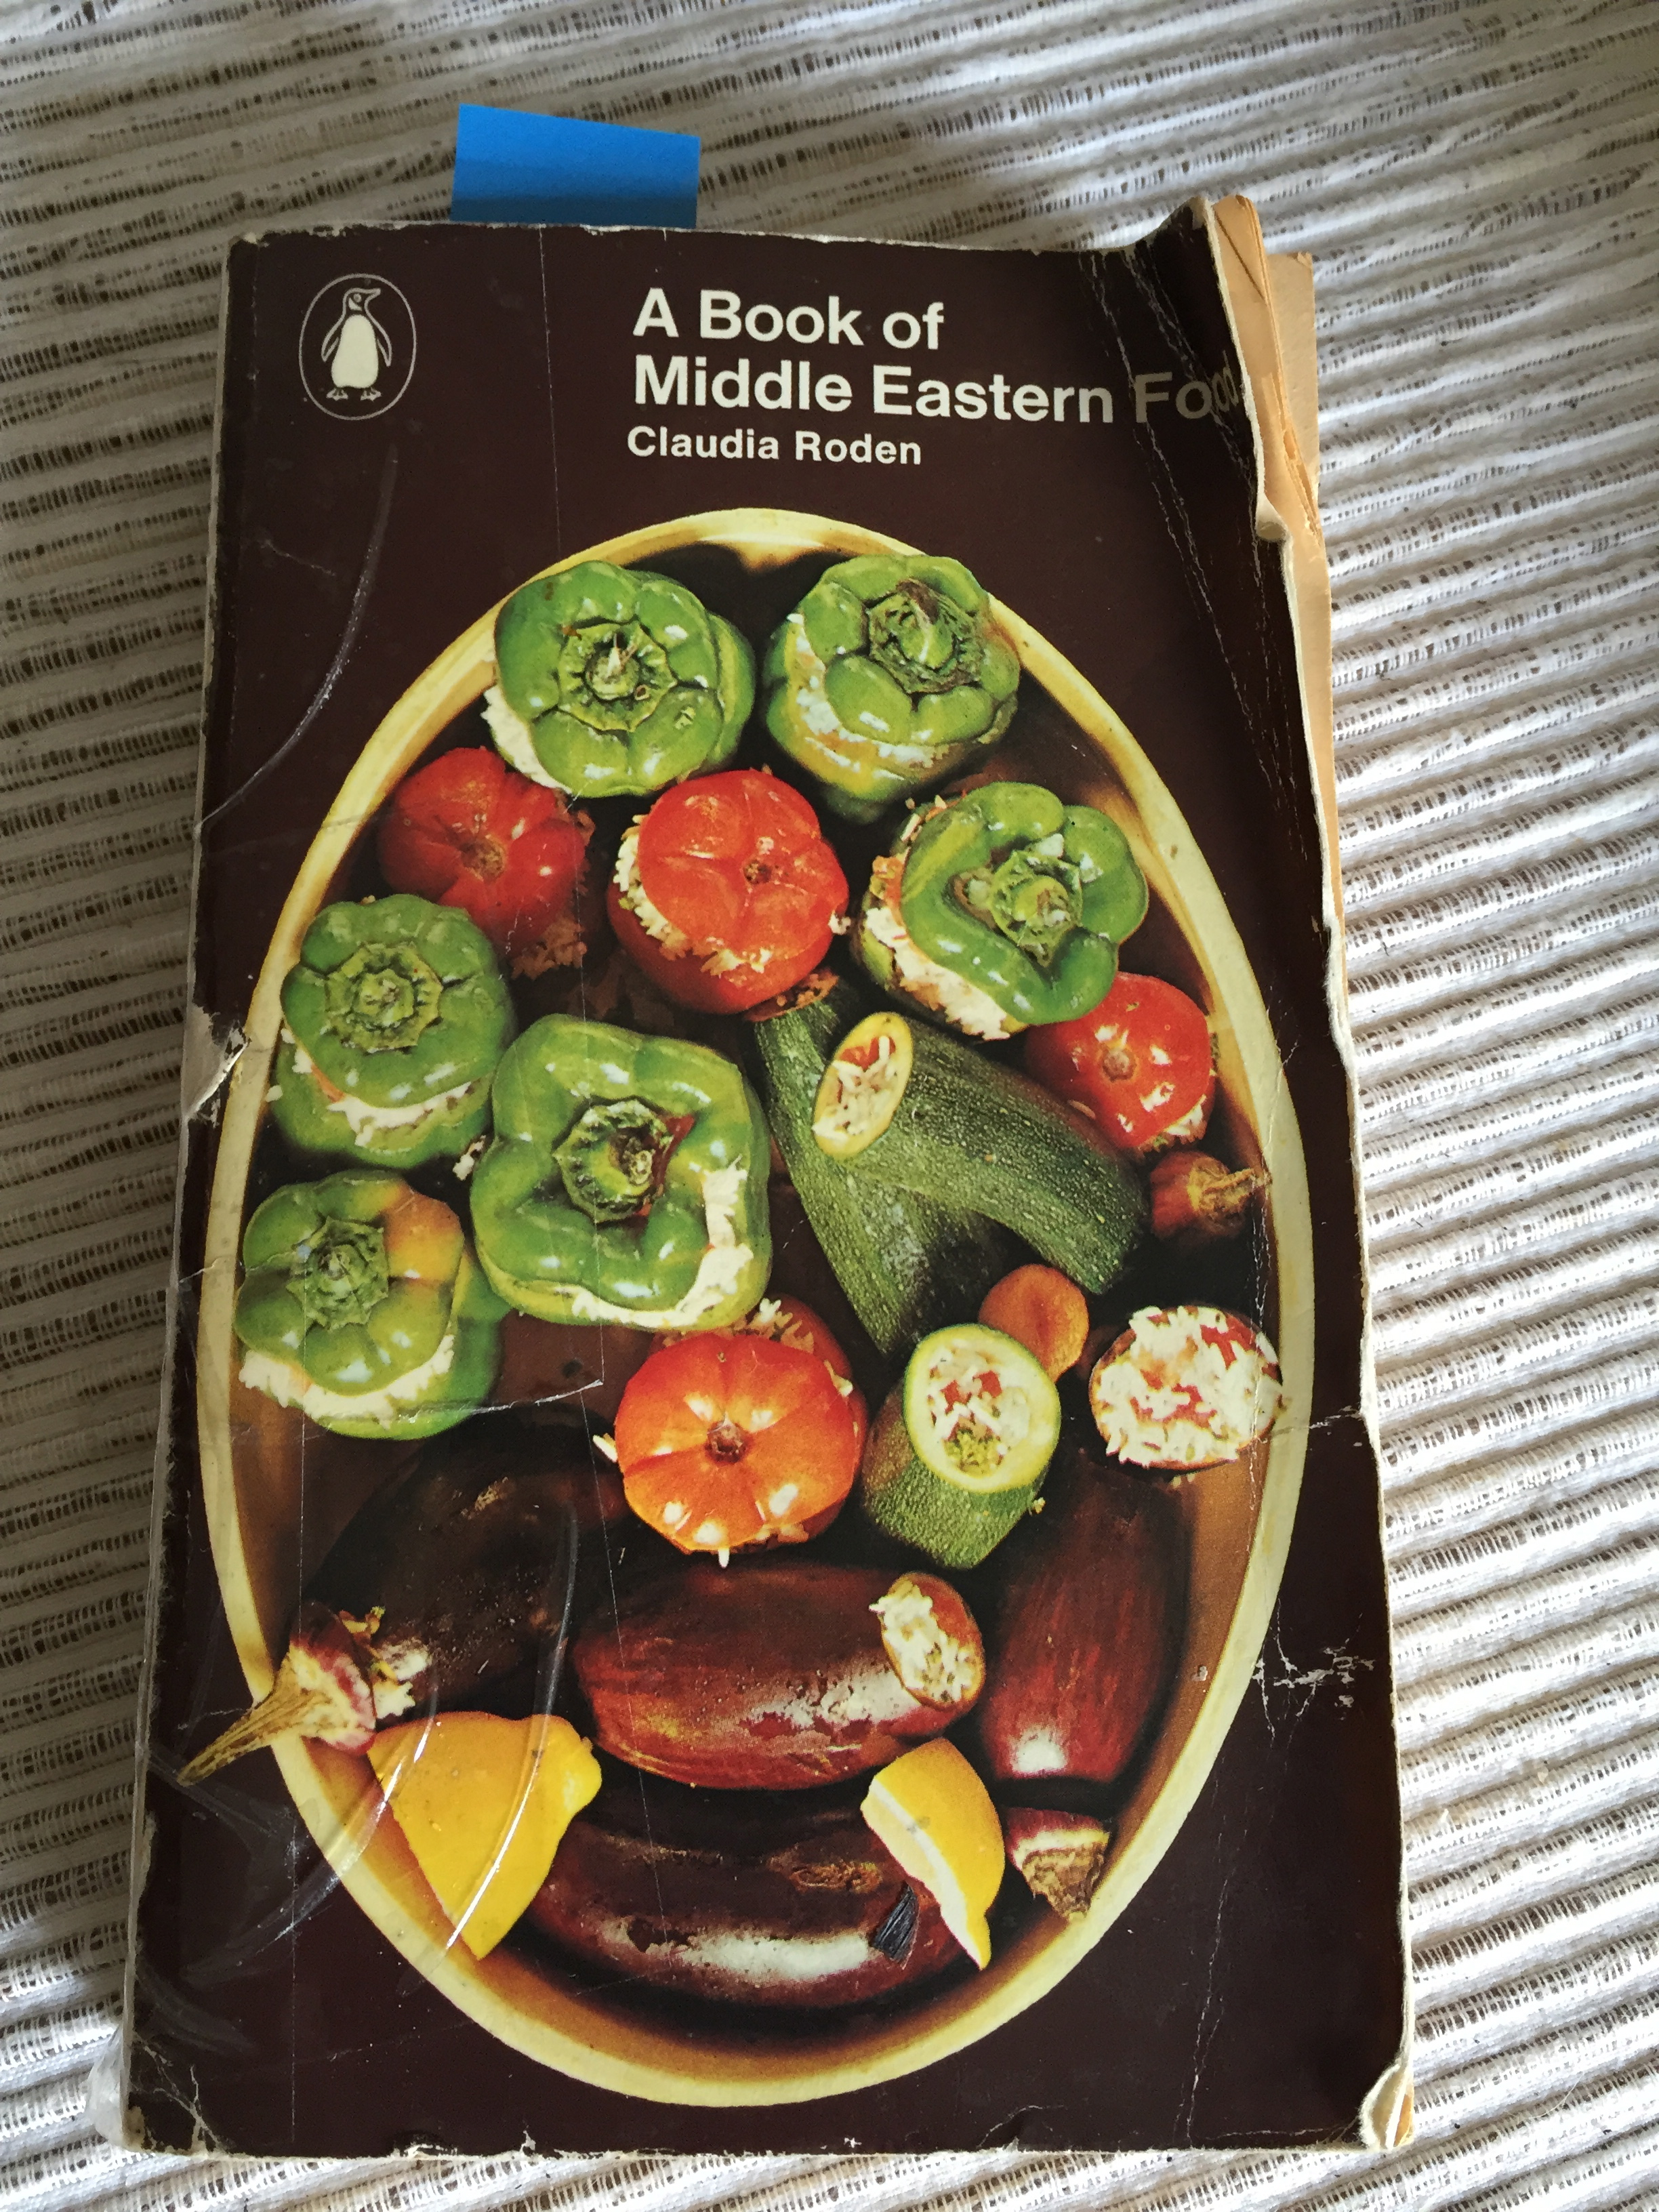 Cookbooks arent what they used to be travel gourmet of my cookbook collection is in the photo at the top is claudia rodens a book of middle eastern food this was first published in 1968 even i was forumfinder Images